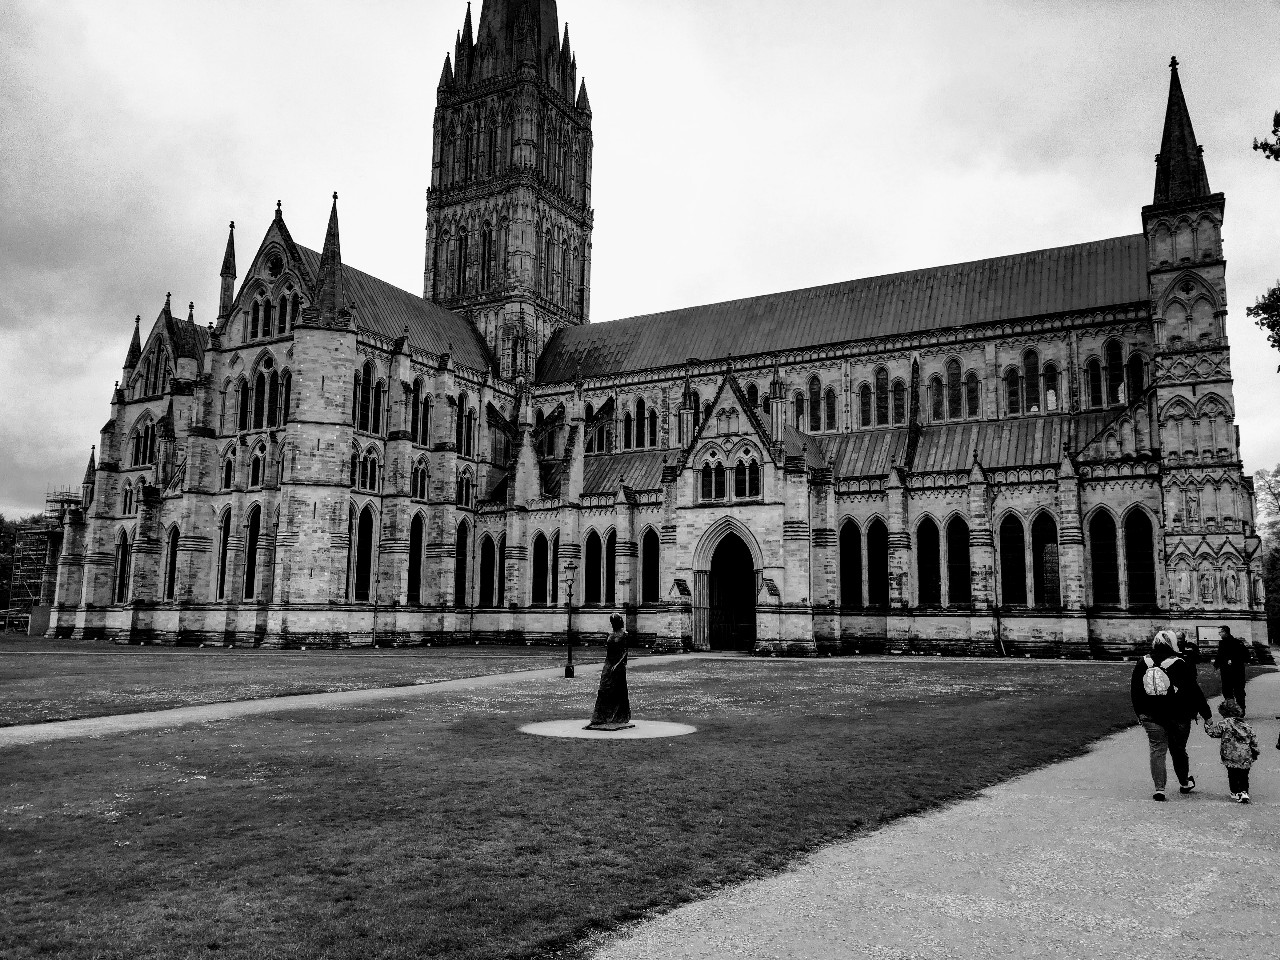 Salisbury Cathedral in black and white